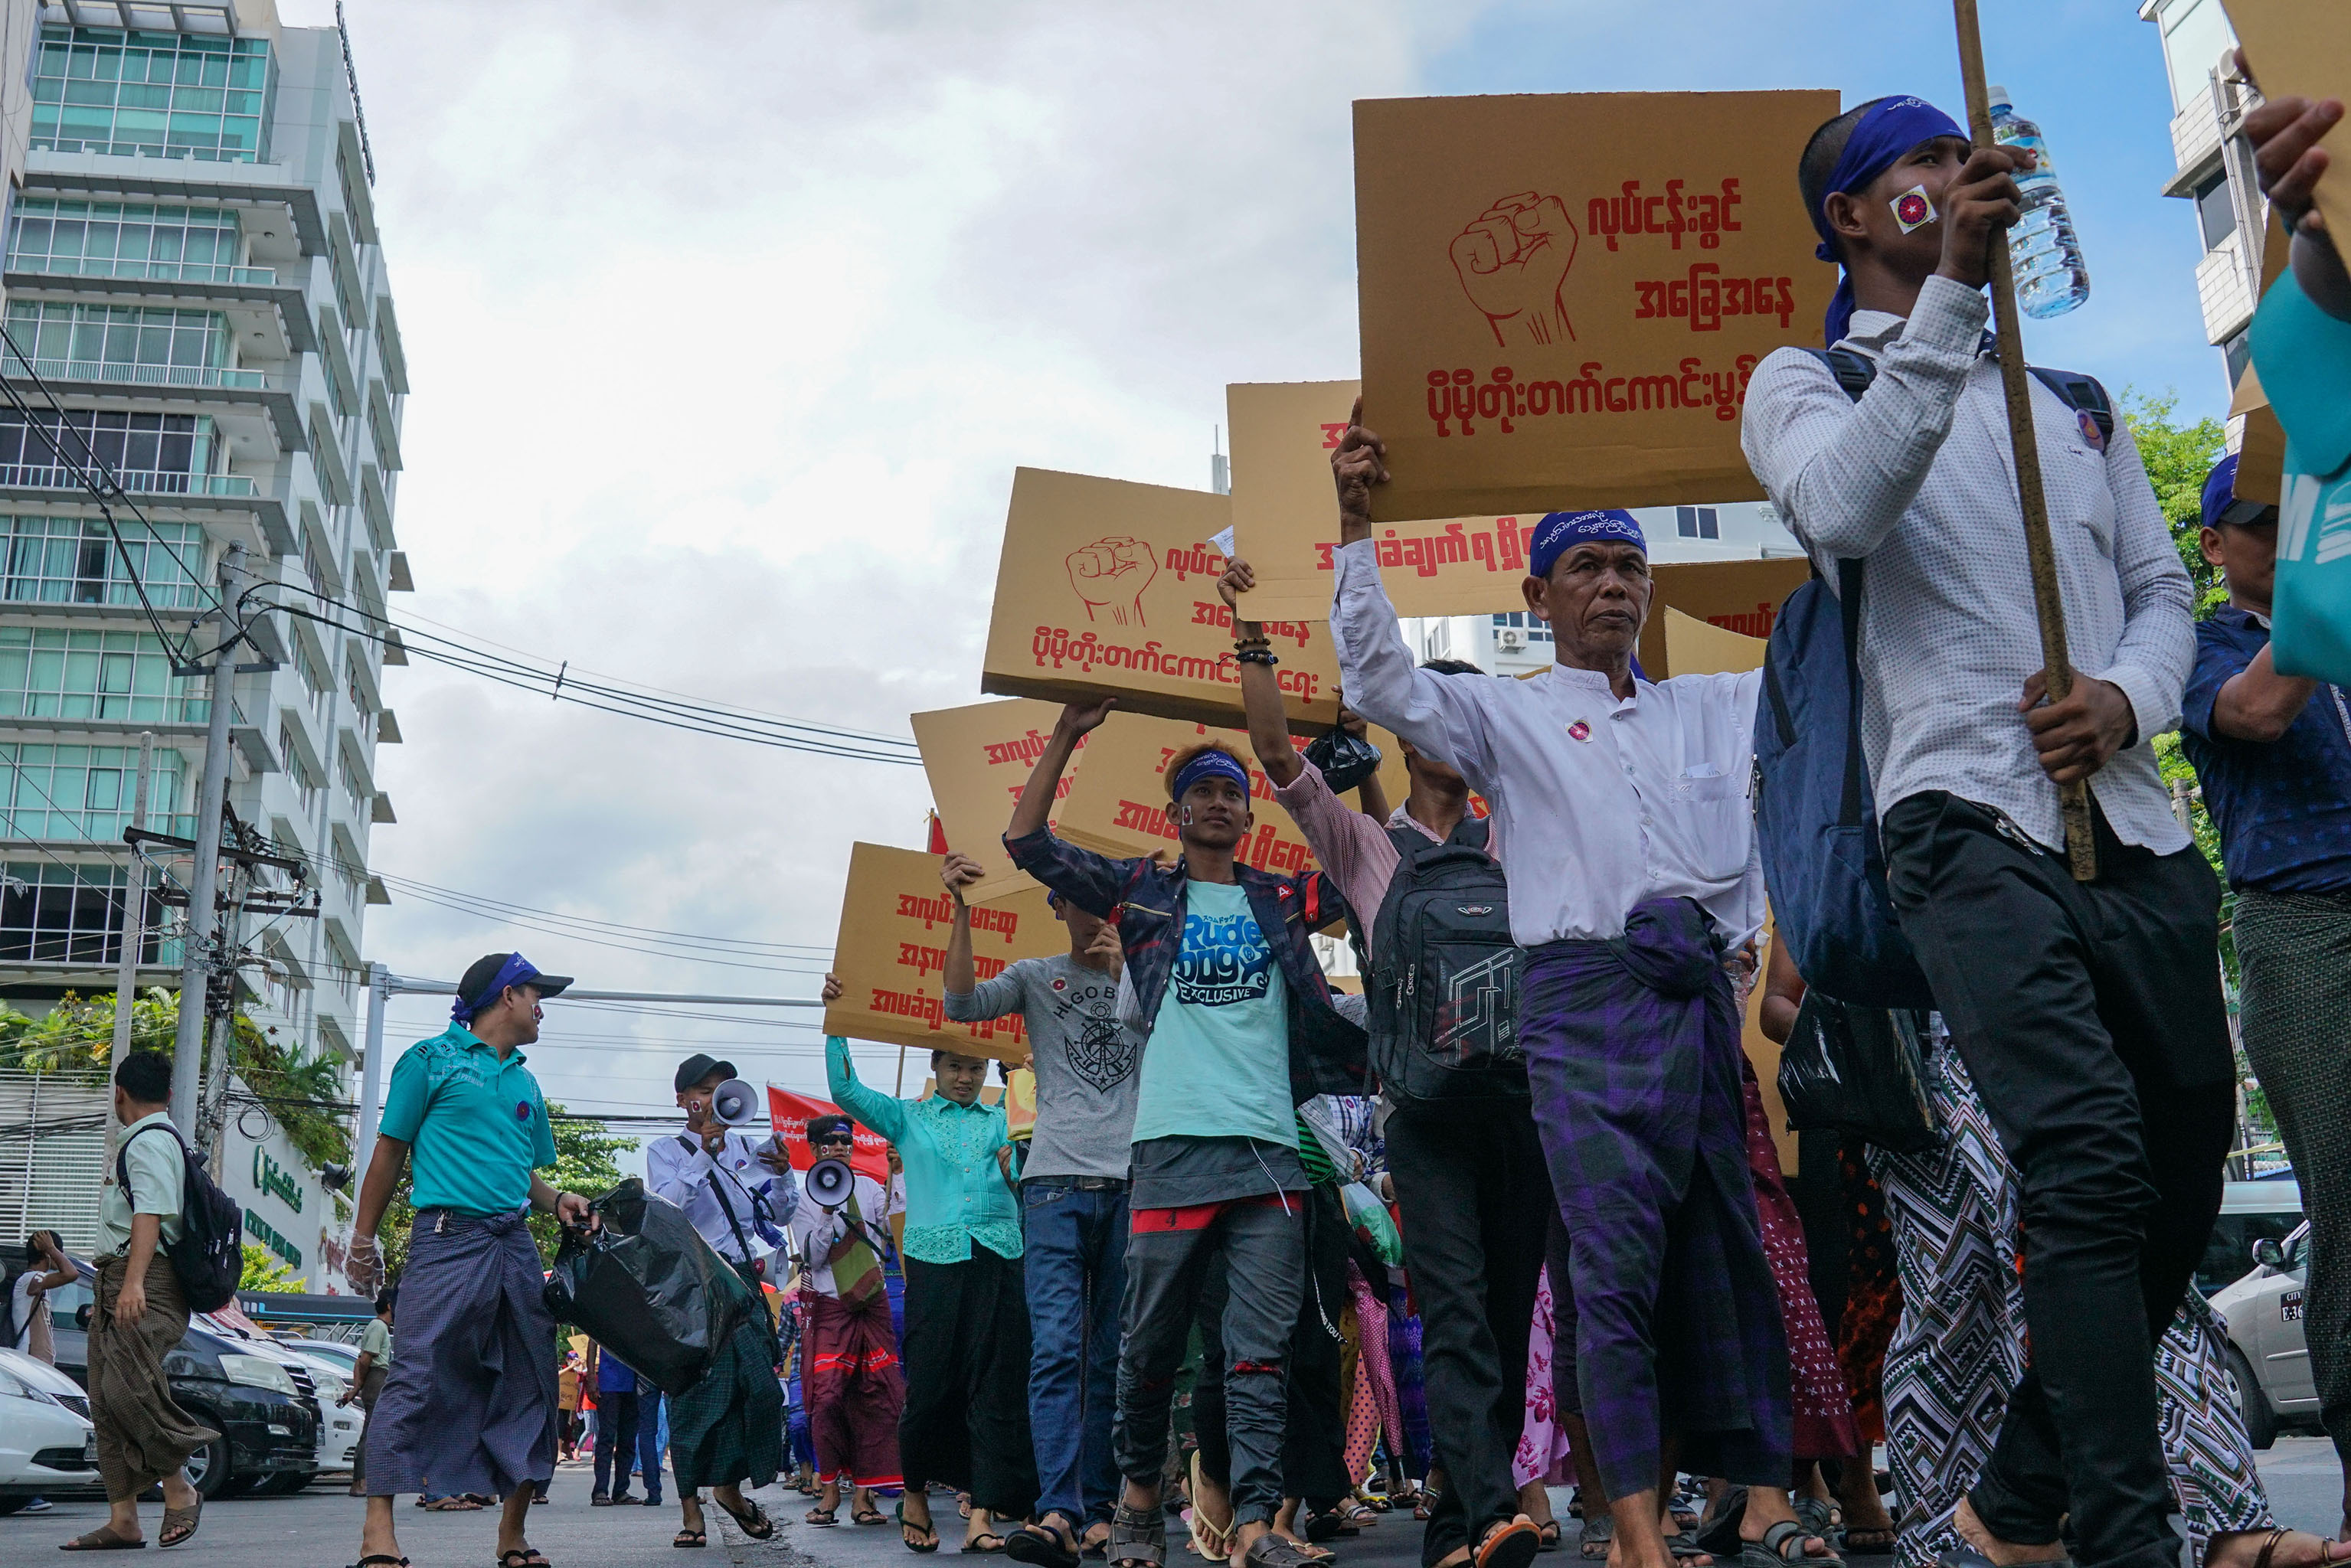 Workers with minimum wage slogans marching in downtown Yangon.